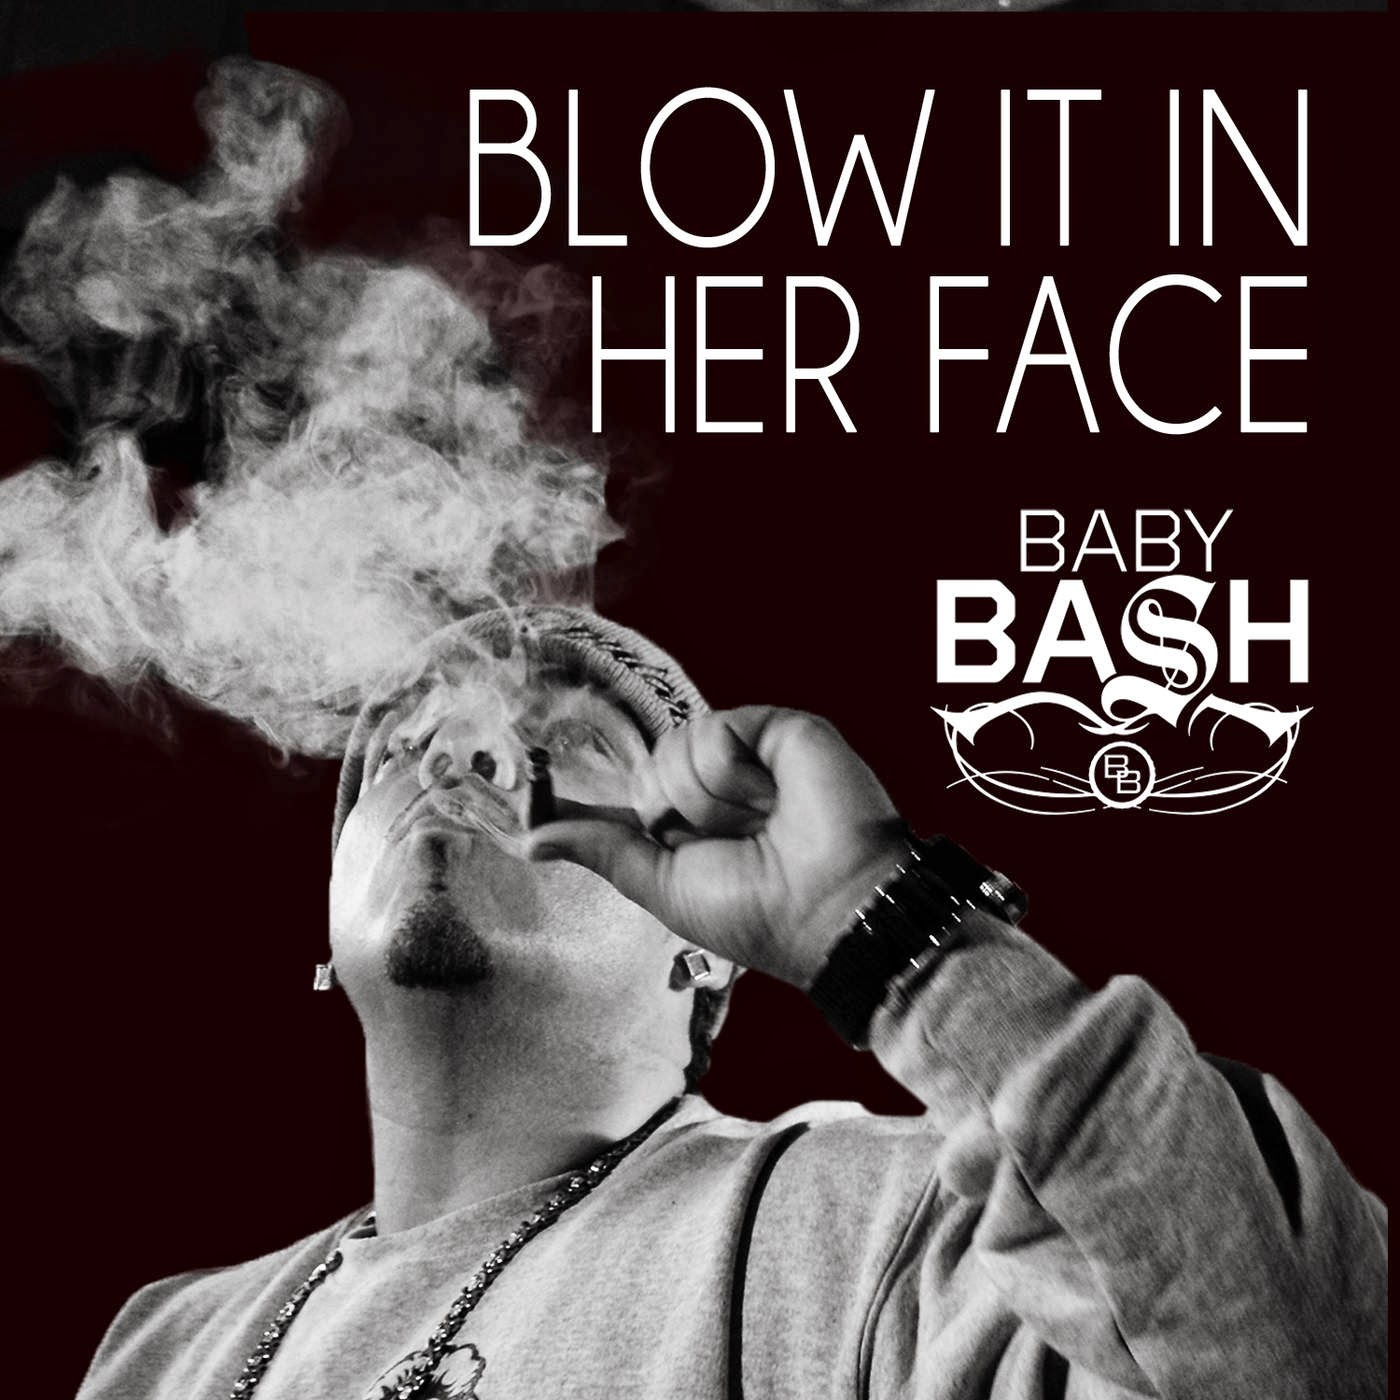 Baby Bash - Blow It In Her Face (feat. Cousin Fik & Driyp Drop) - Single Cover